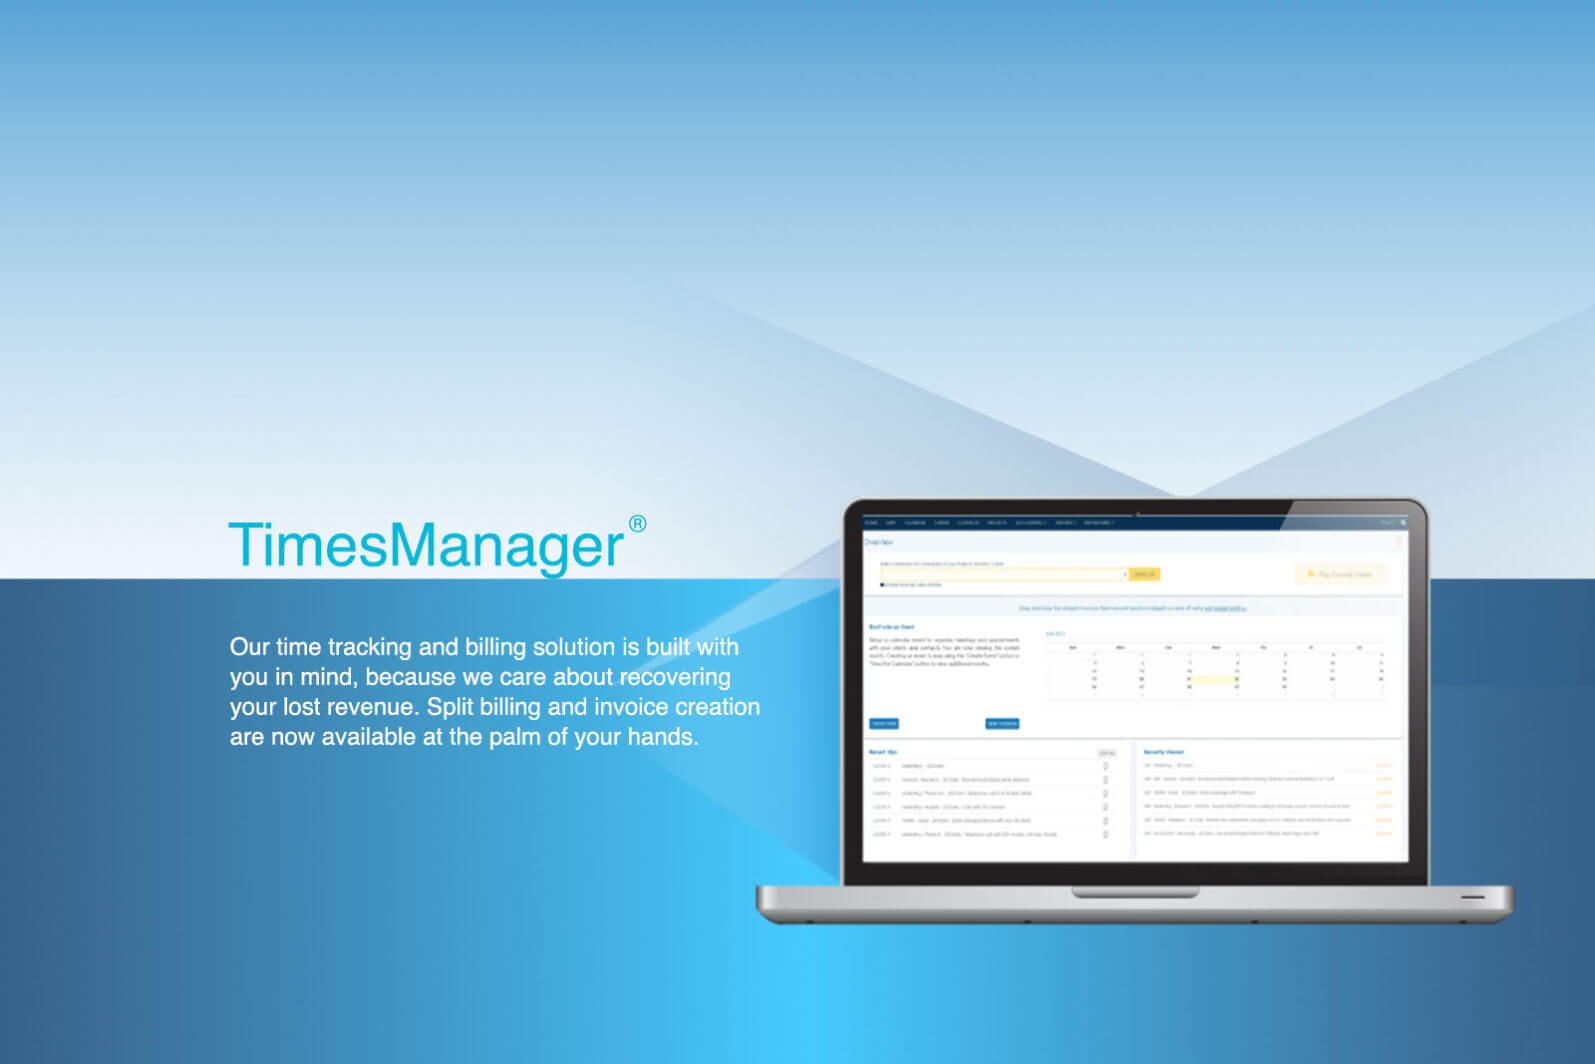 TimesManager by JDi Data